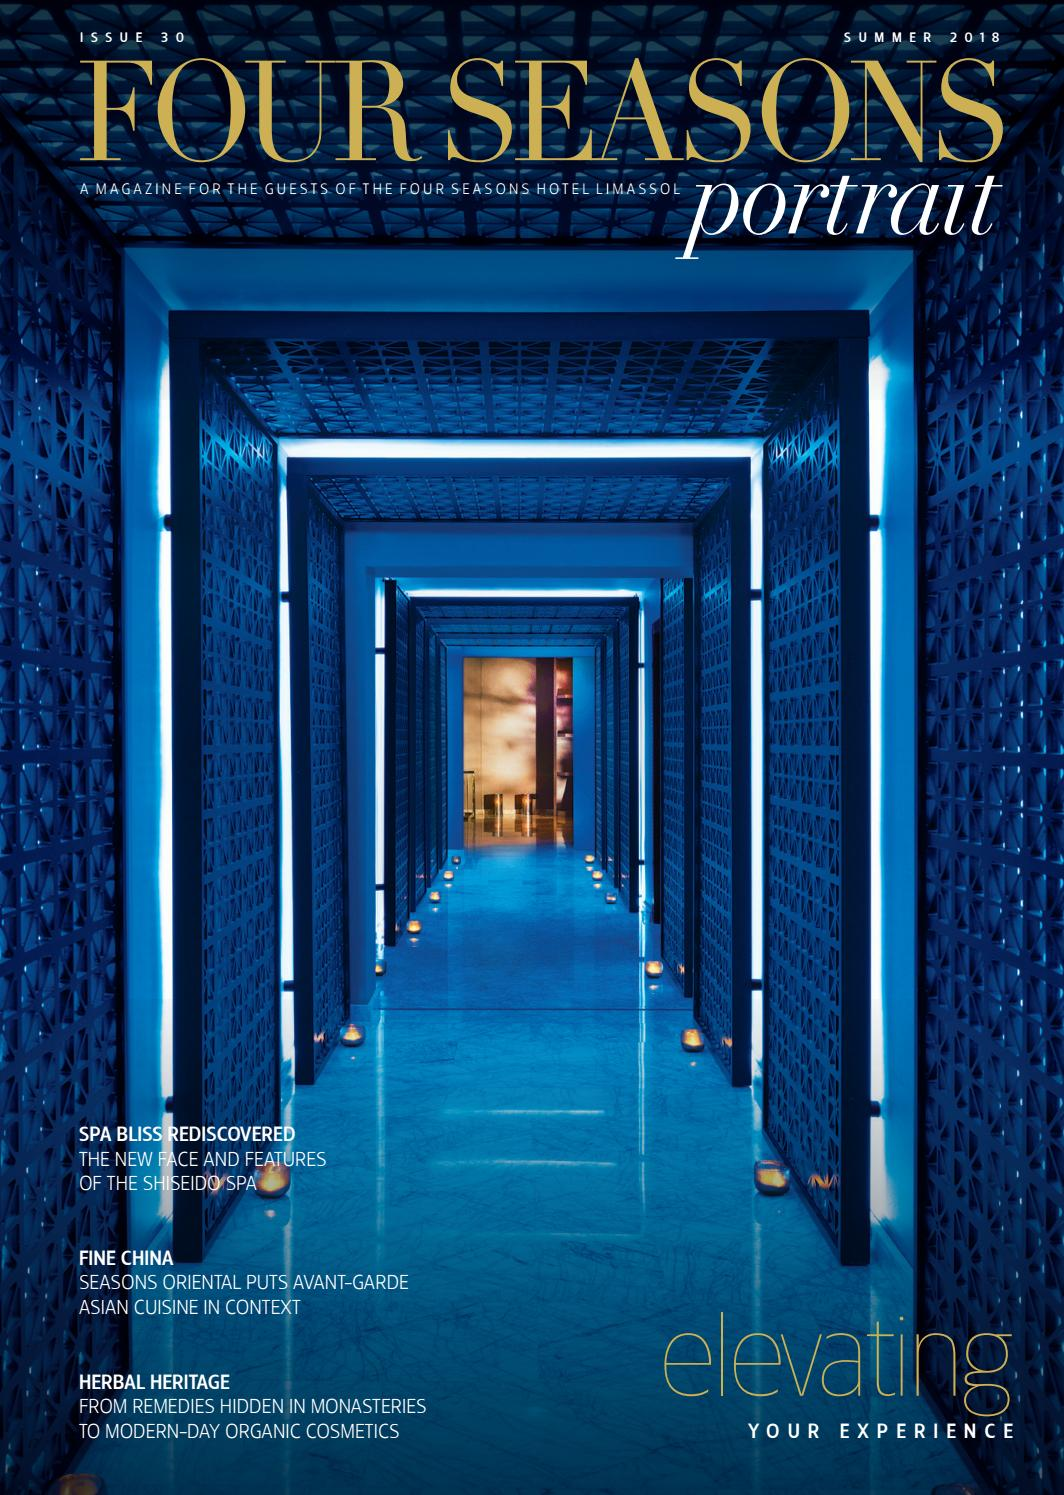 Four Seasons - Portrait - Issue 30 Summer 2018 by T&E